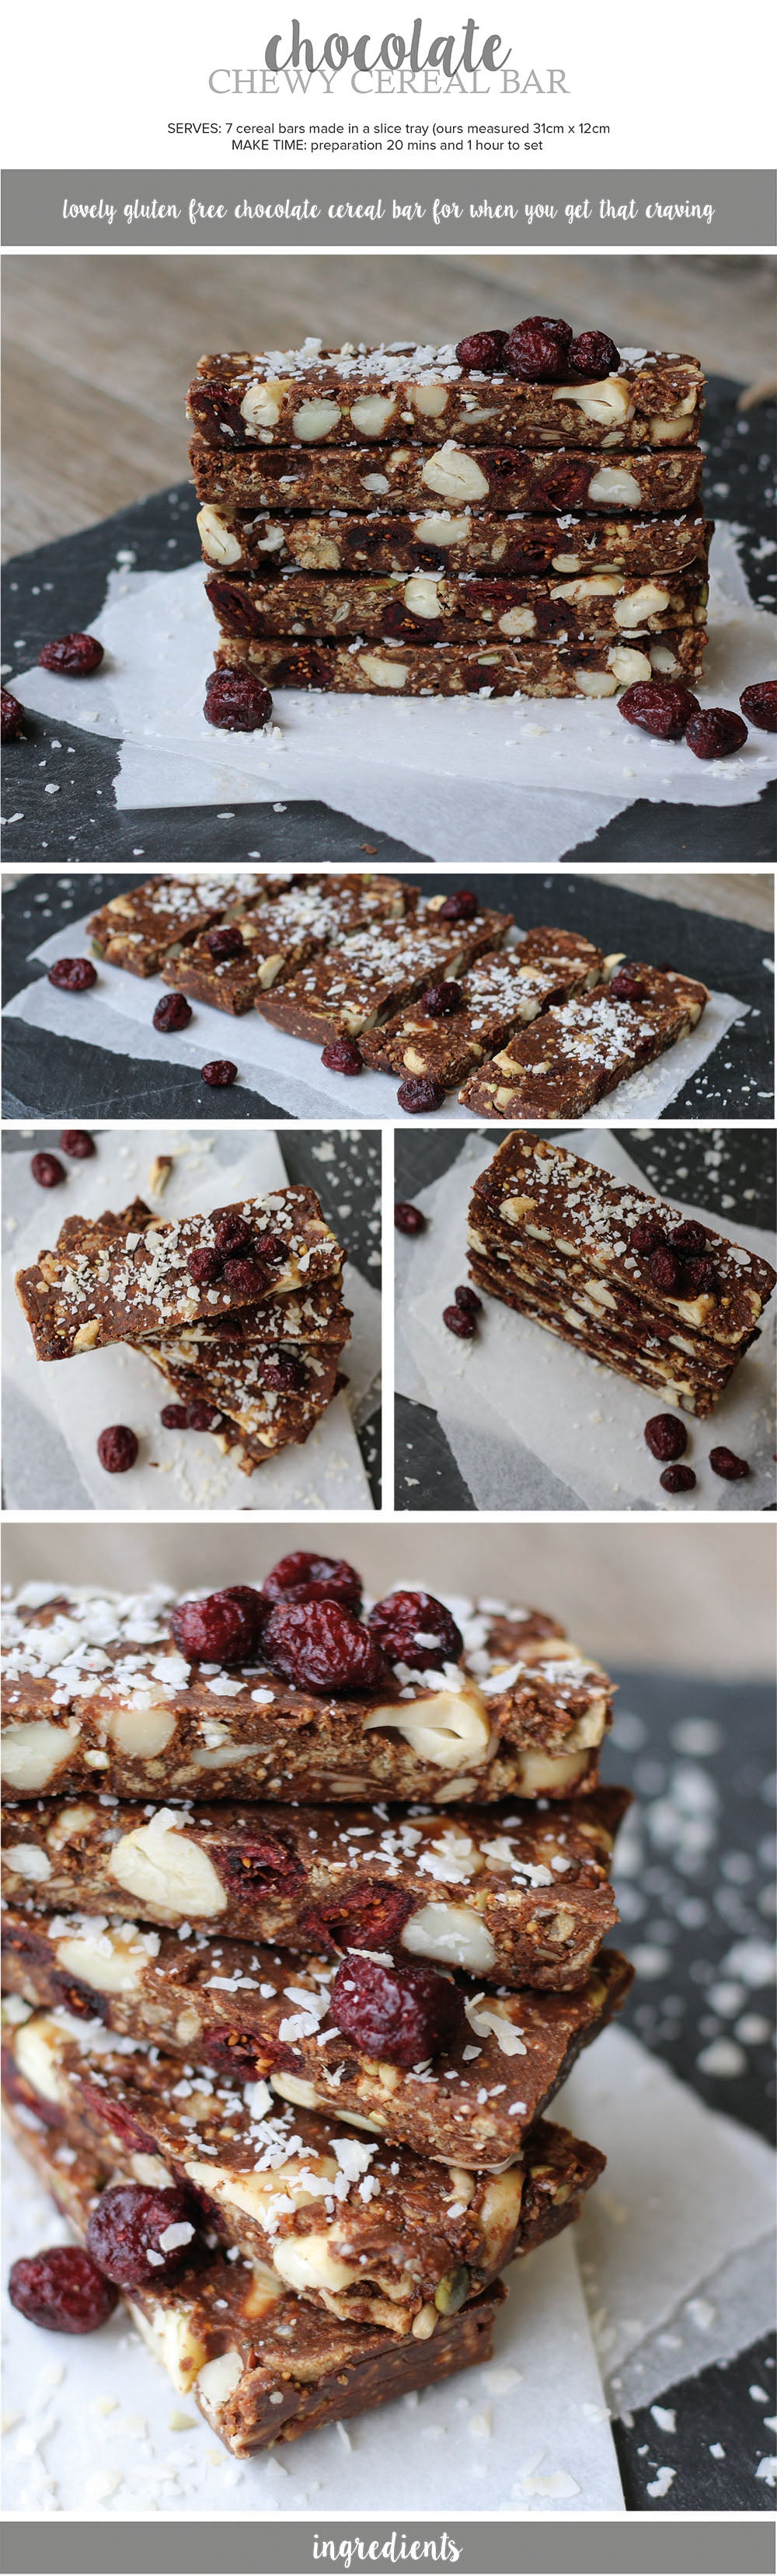 Chocolate Cereal Bar Recipe